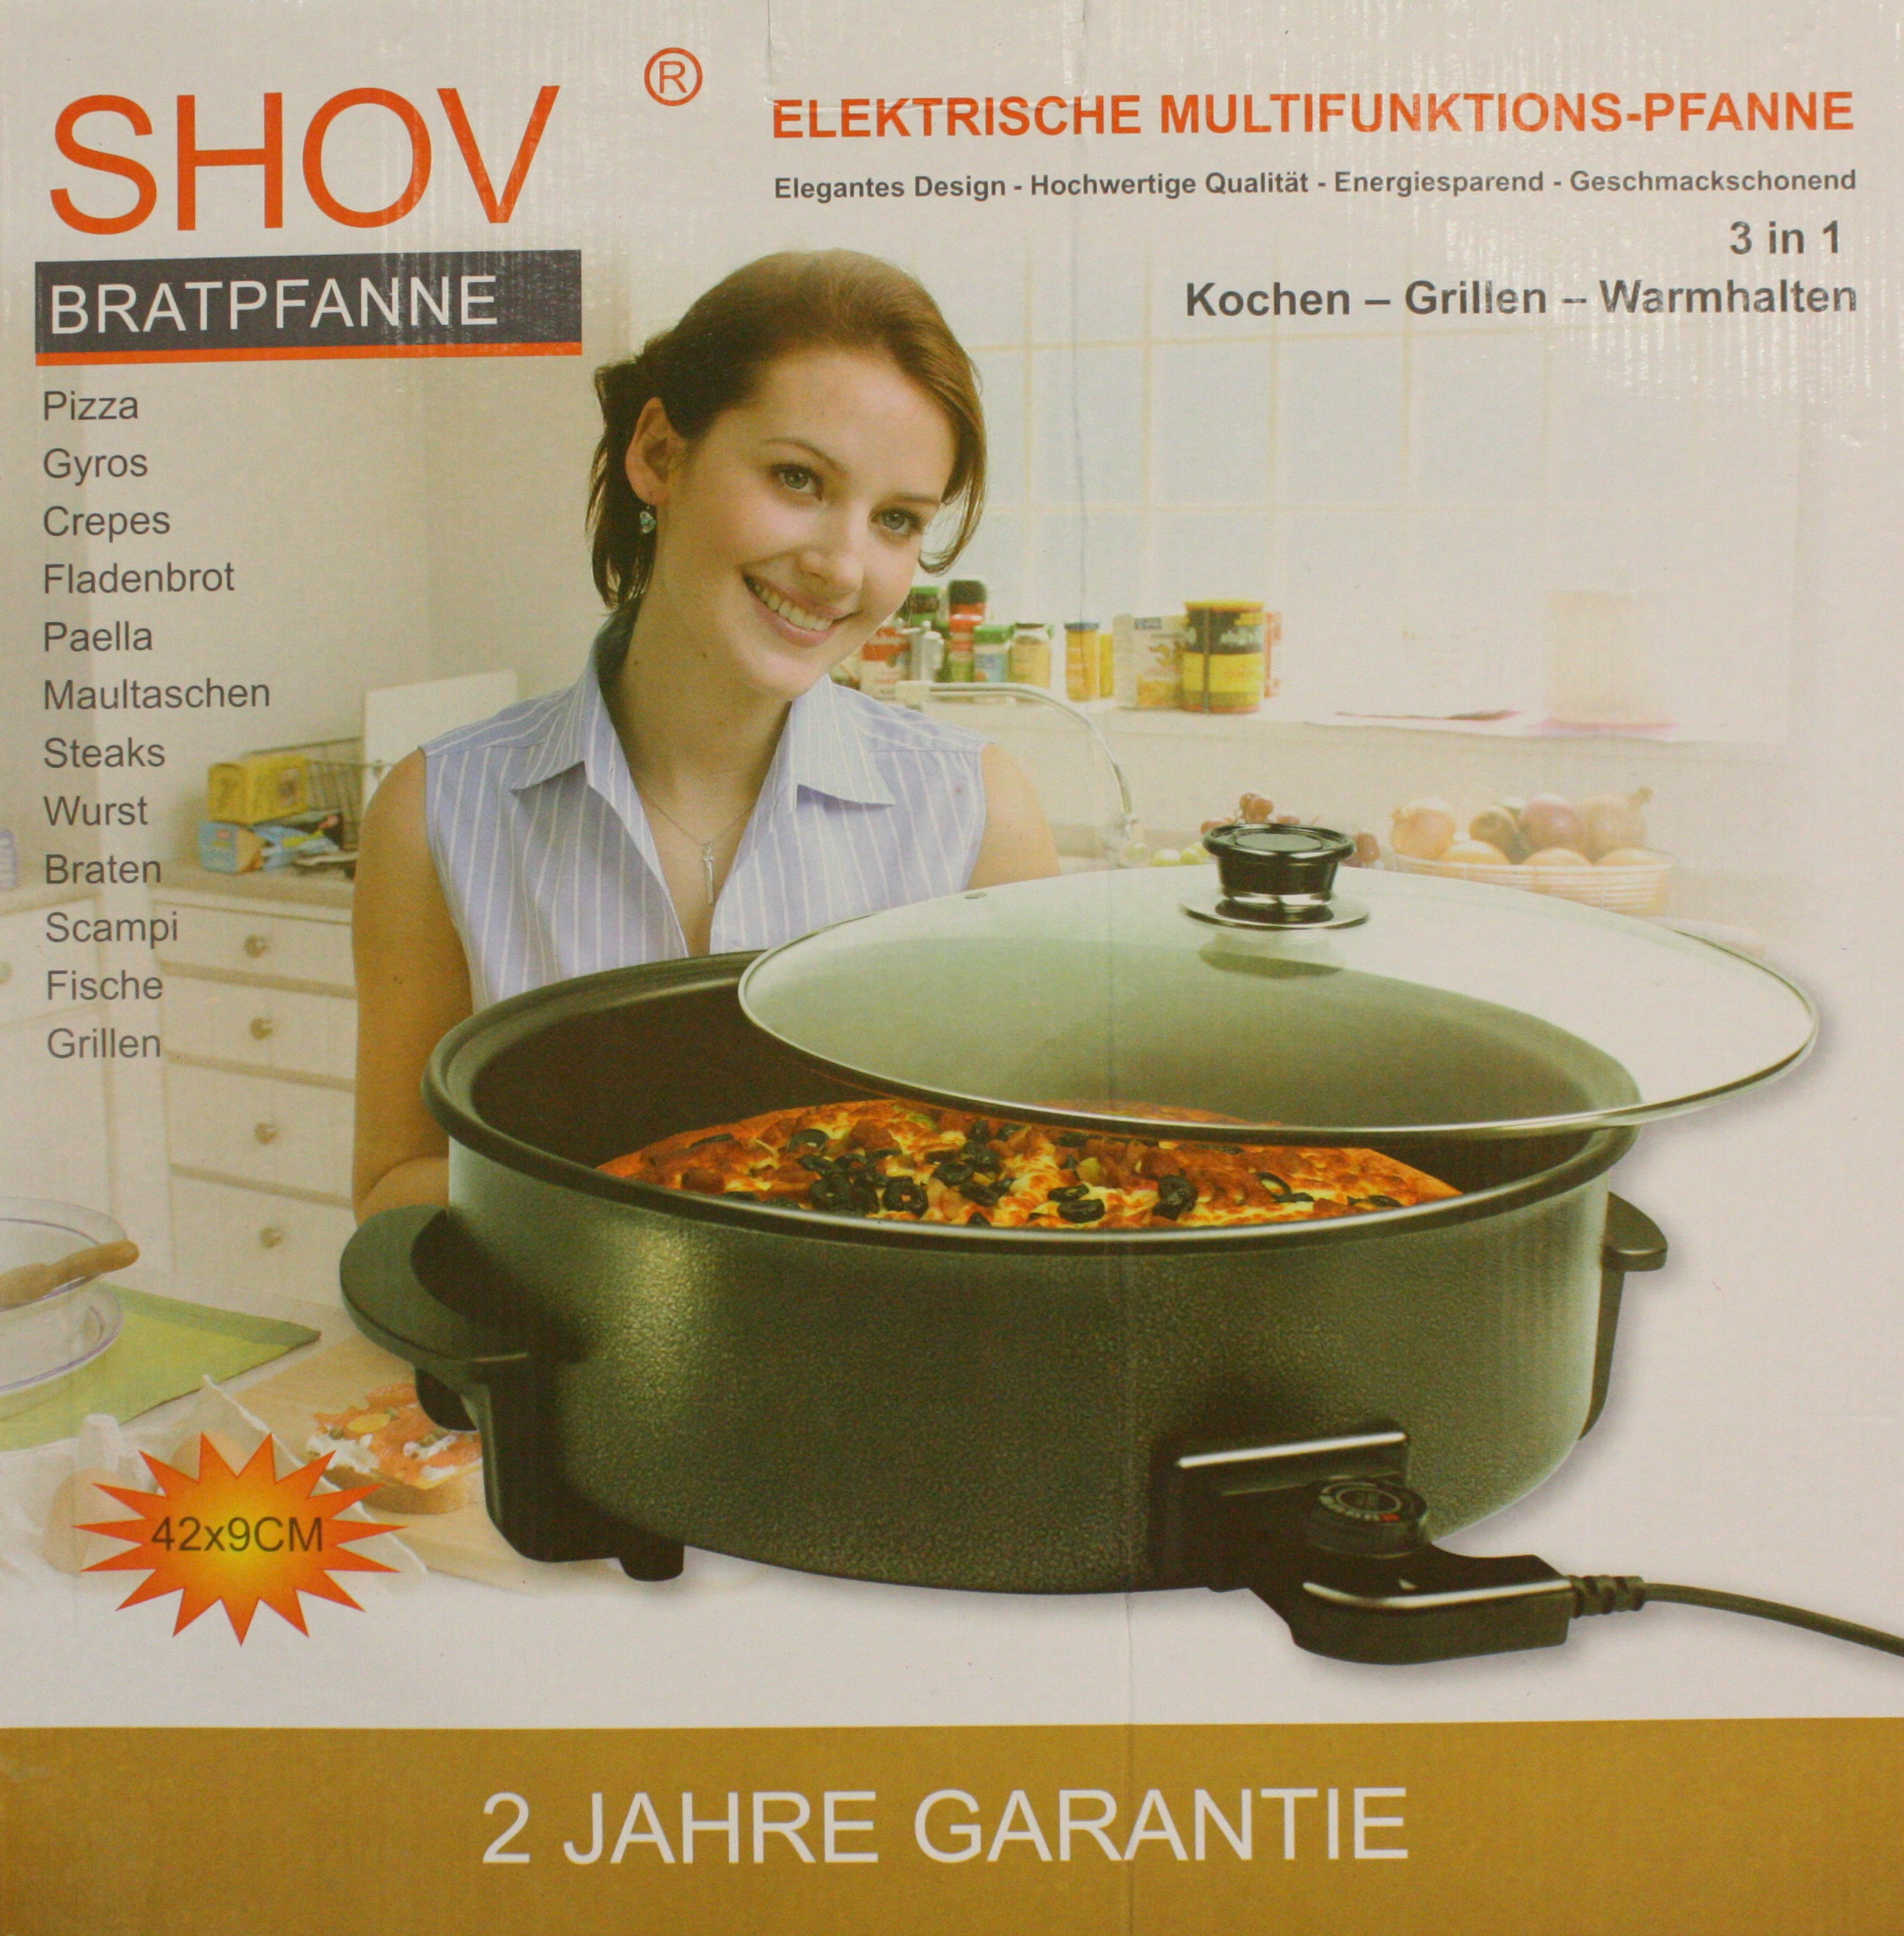 elektrische multipfanne shov bratpfanne 42x9 cm cm pizzapfanne partypfanne. Black Bedroom Furniture Sets. Home Design Ideas